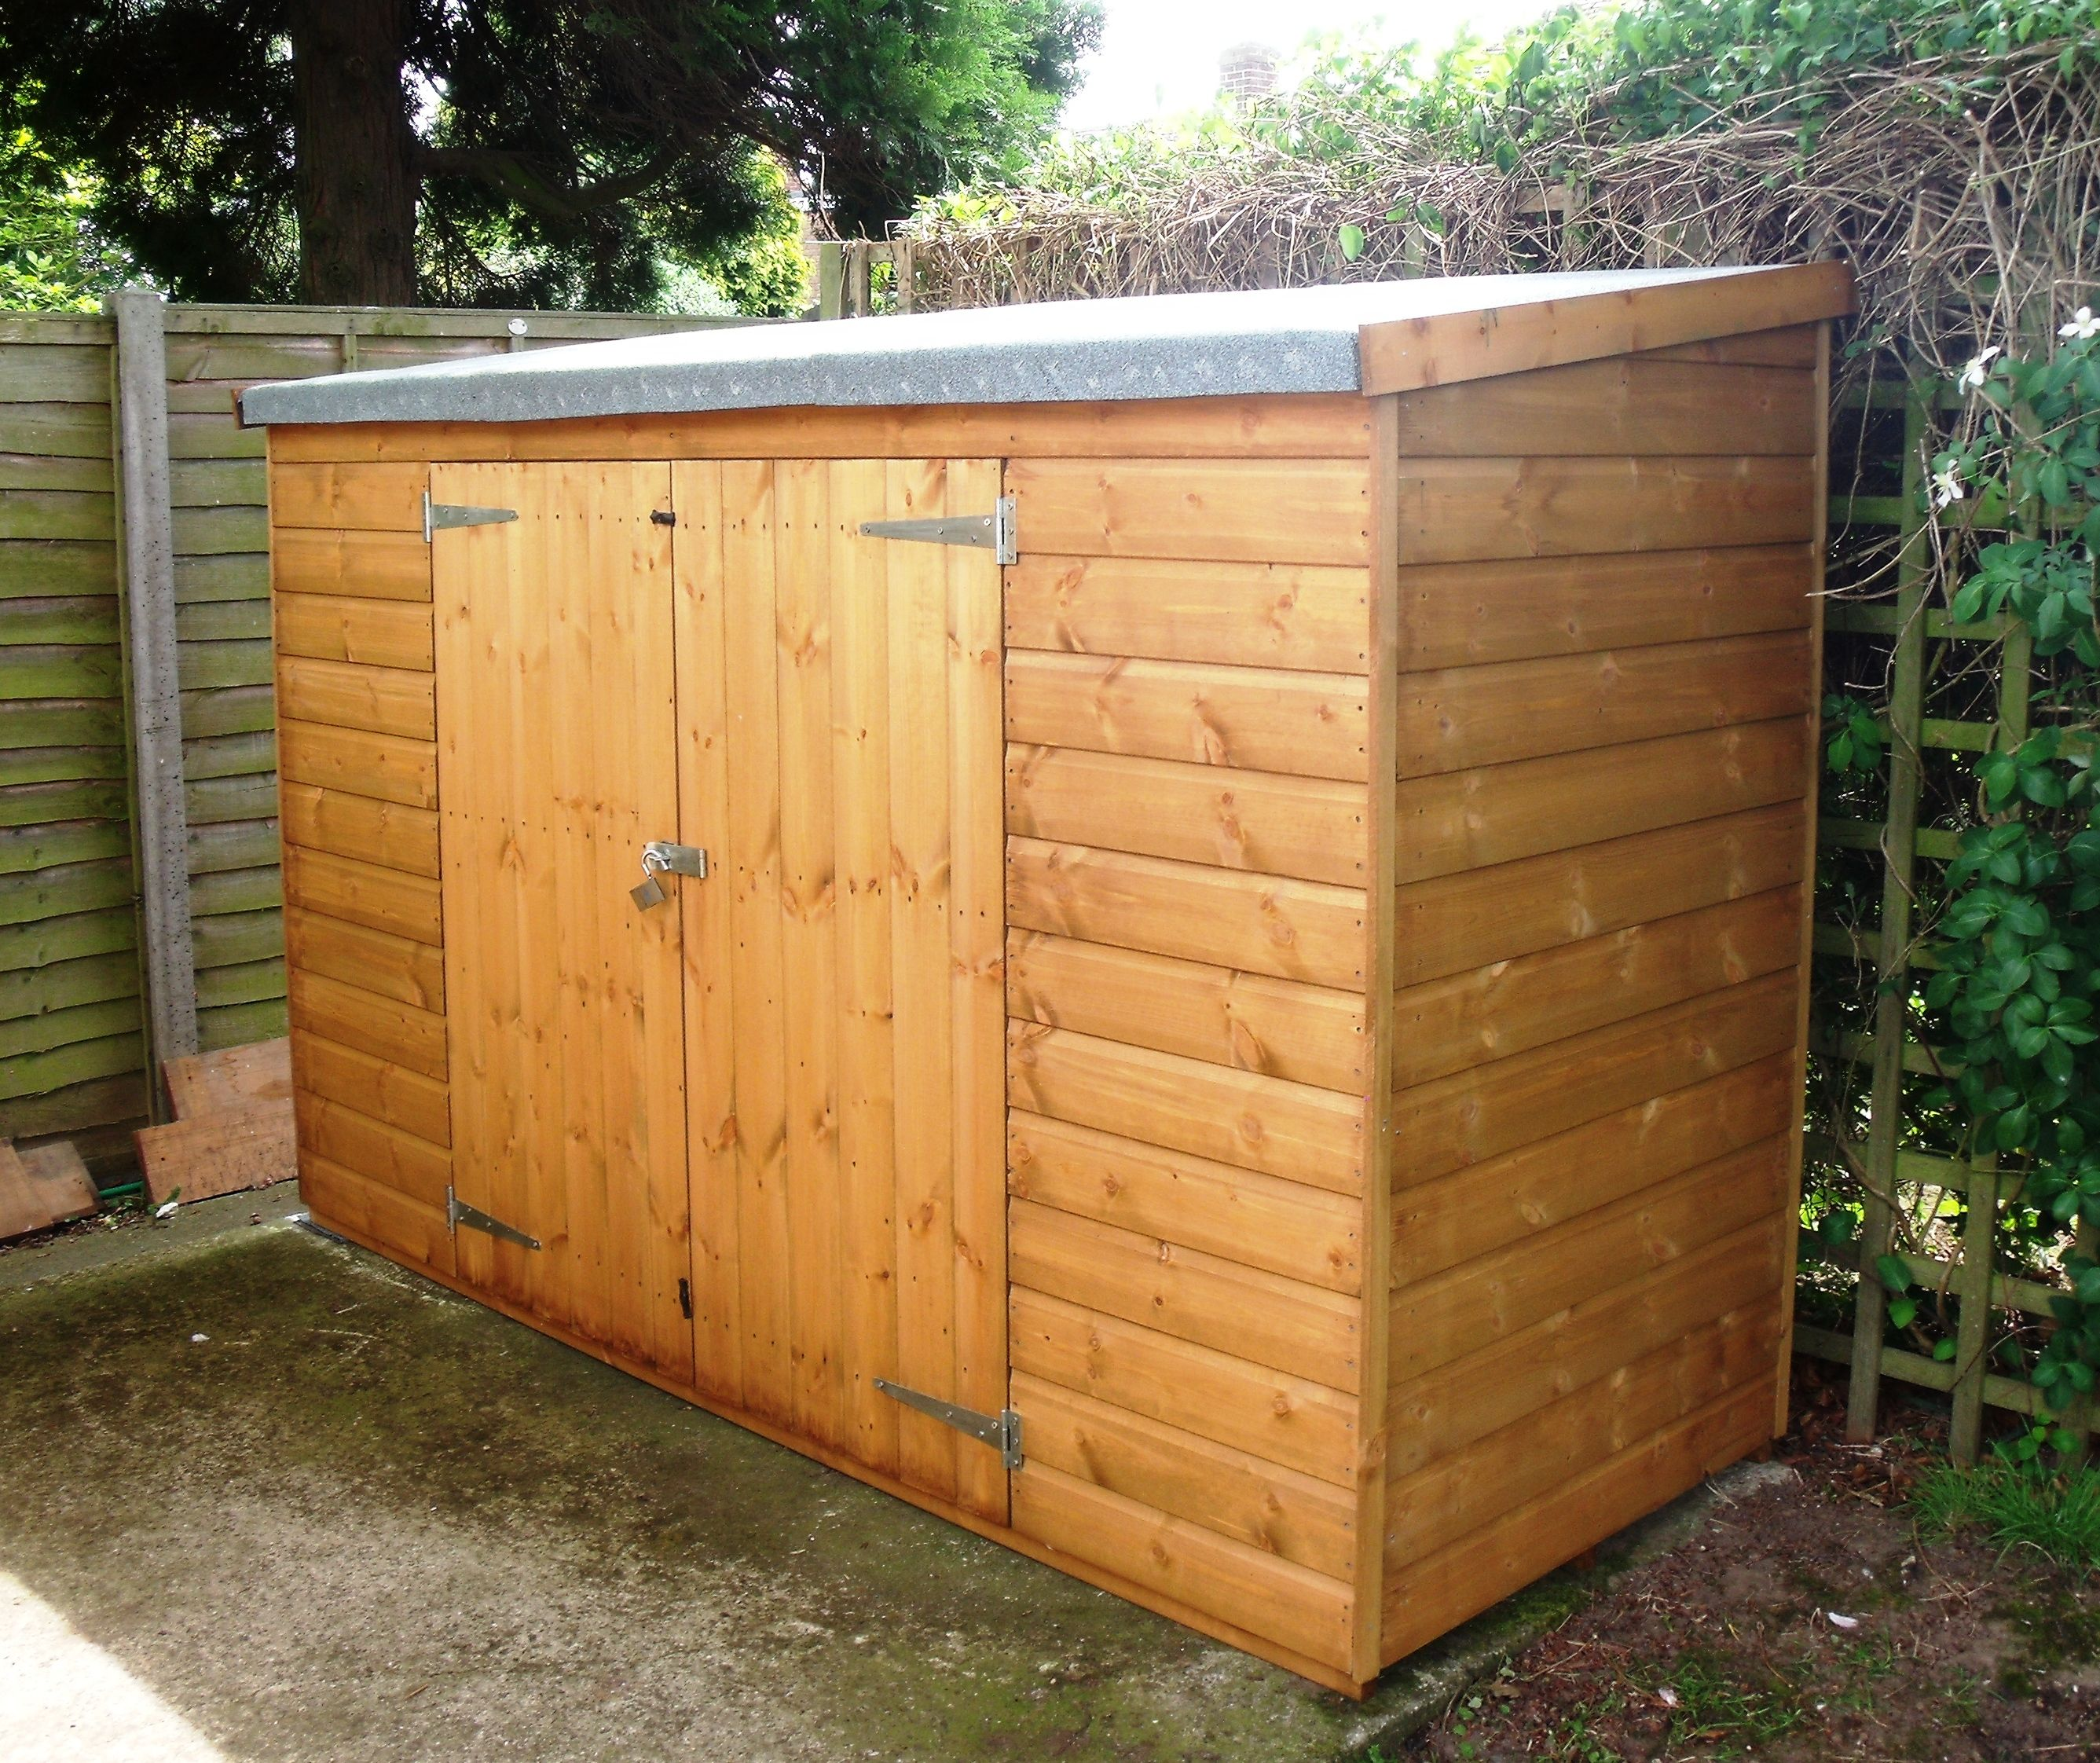 Exceptional Beautiful Shed Ideas For Your Garden And Backyard Decorations: Enchanting Wooden  Shed Ideas Small Size With Sloping Roof And Double Main Doors For Inspiring  ...